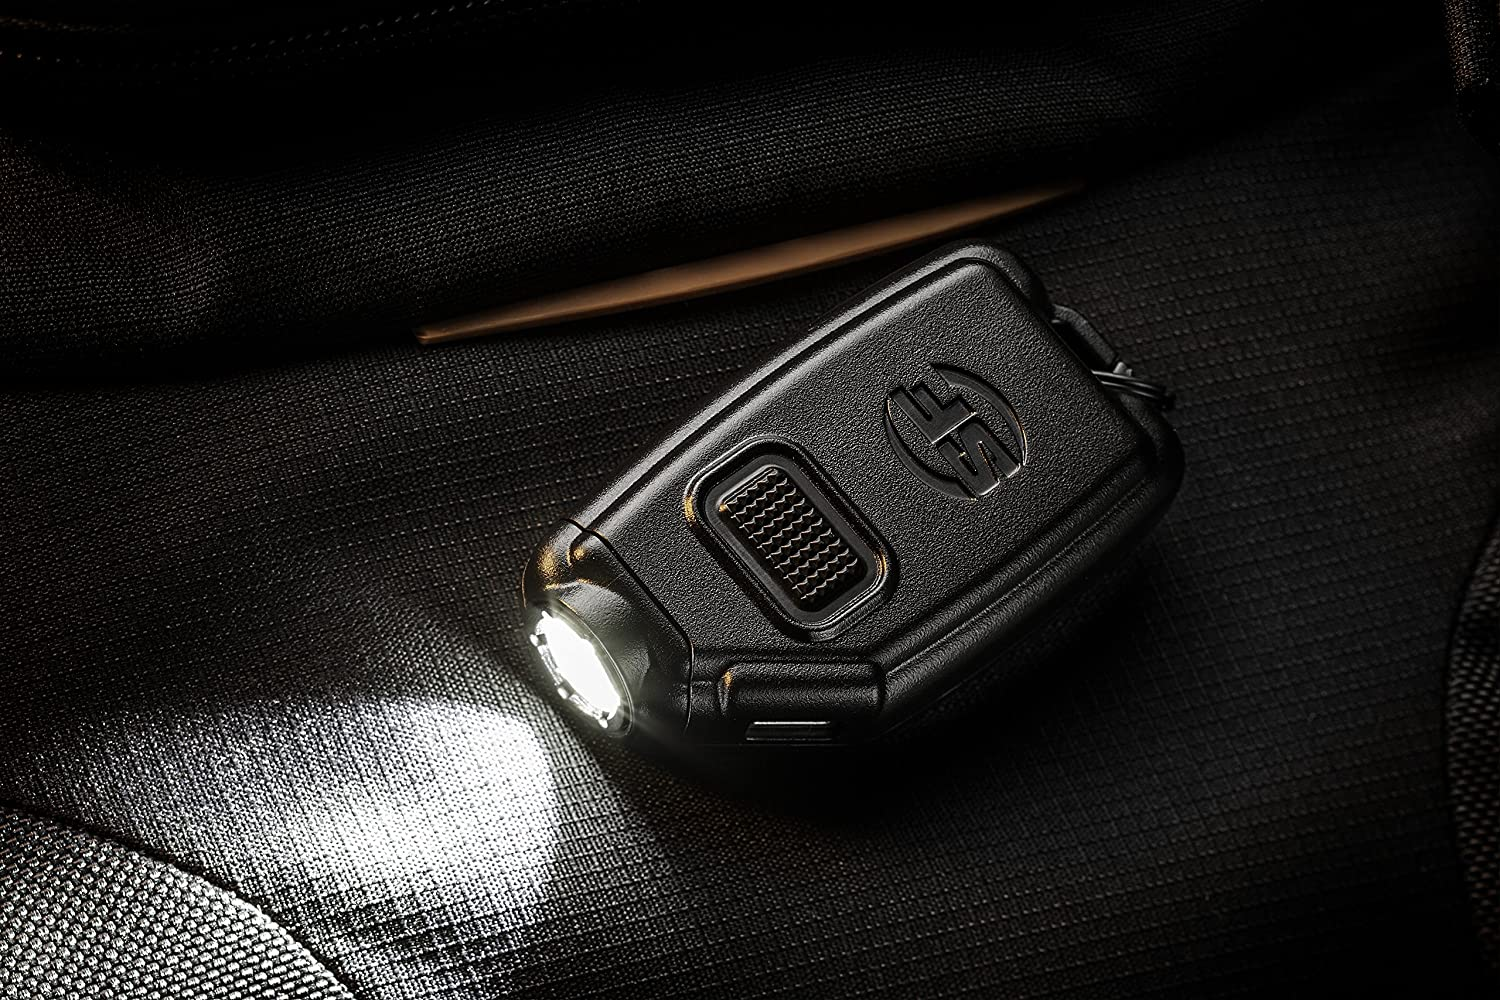 surefire sidekick edc keychain flashlight review